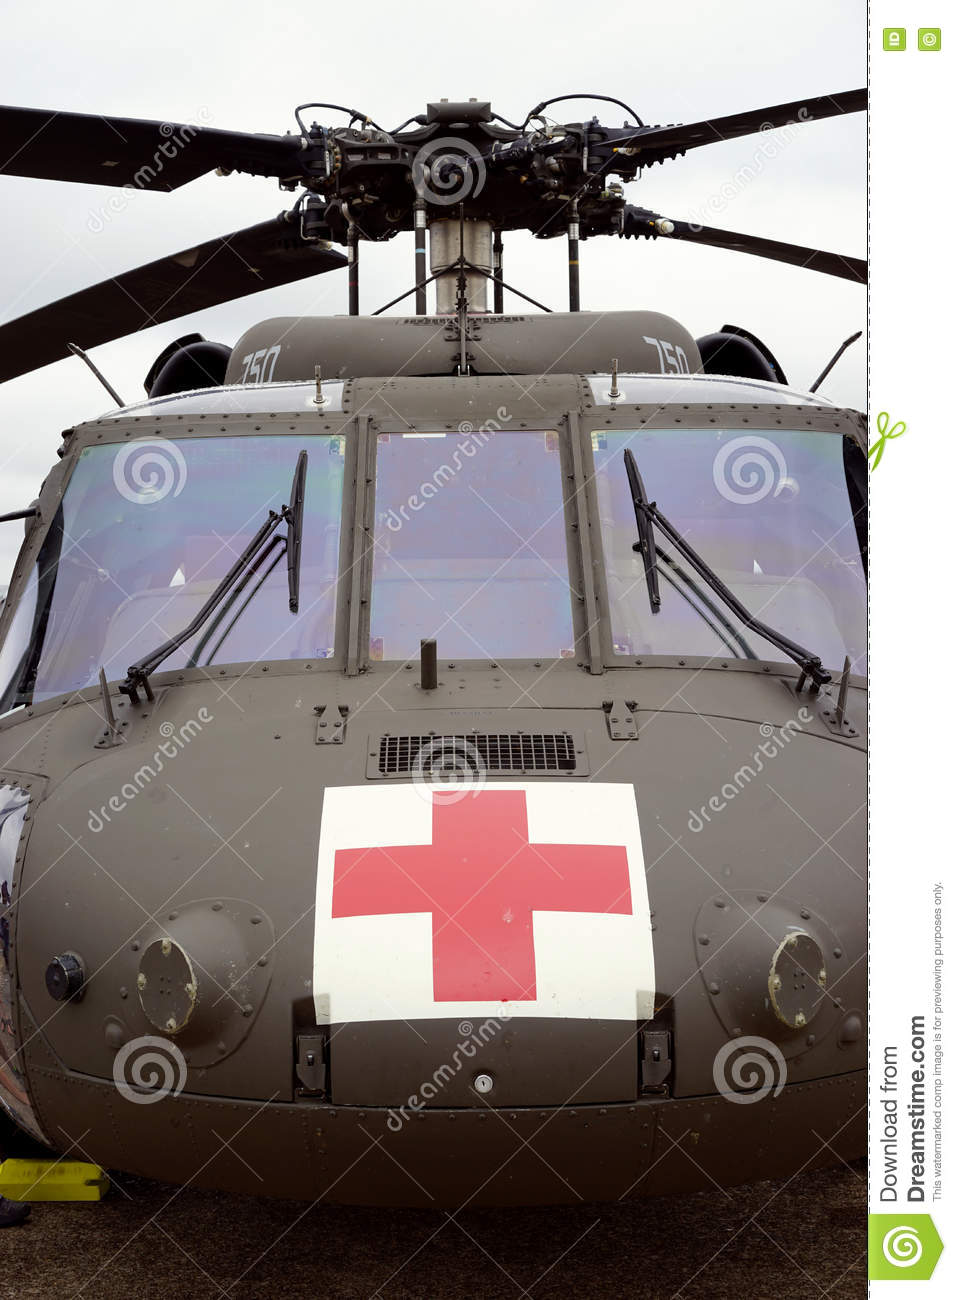 Medical Evacuation Helicopter Stock Image - Image of